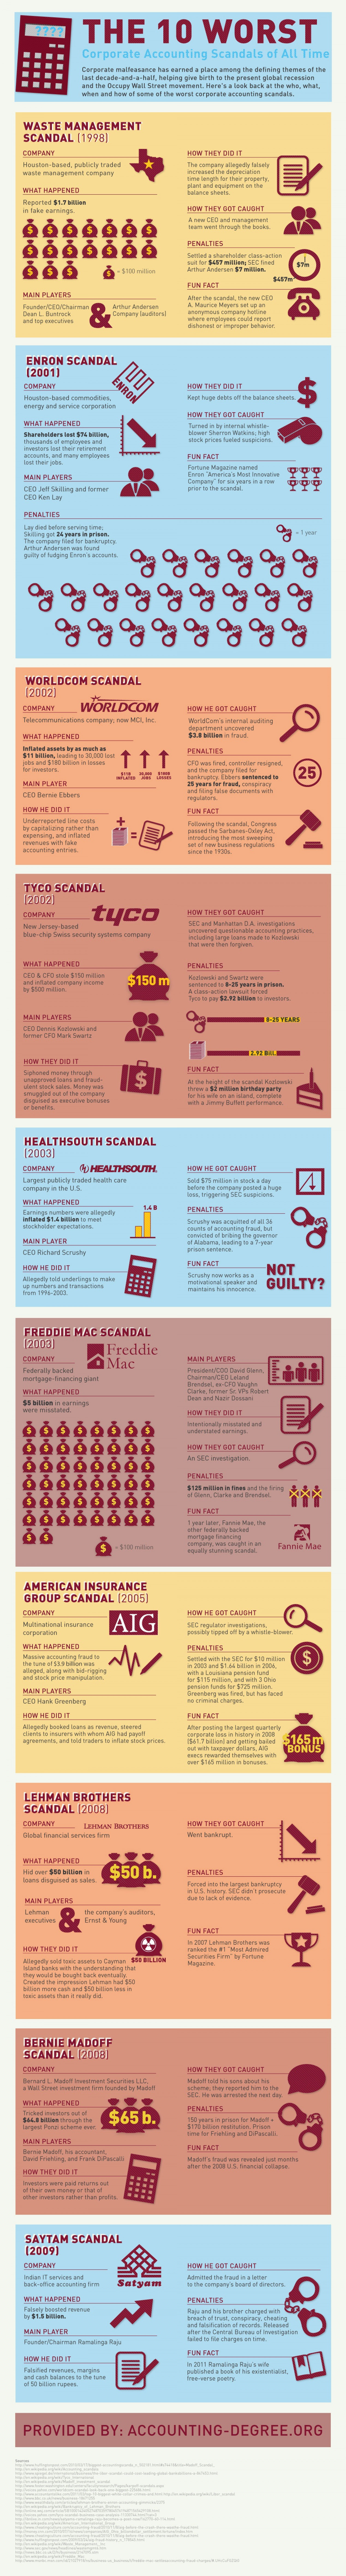 The 10 Worst Corporate Accounting Scandals of All Time Infographic